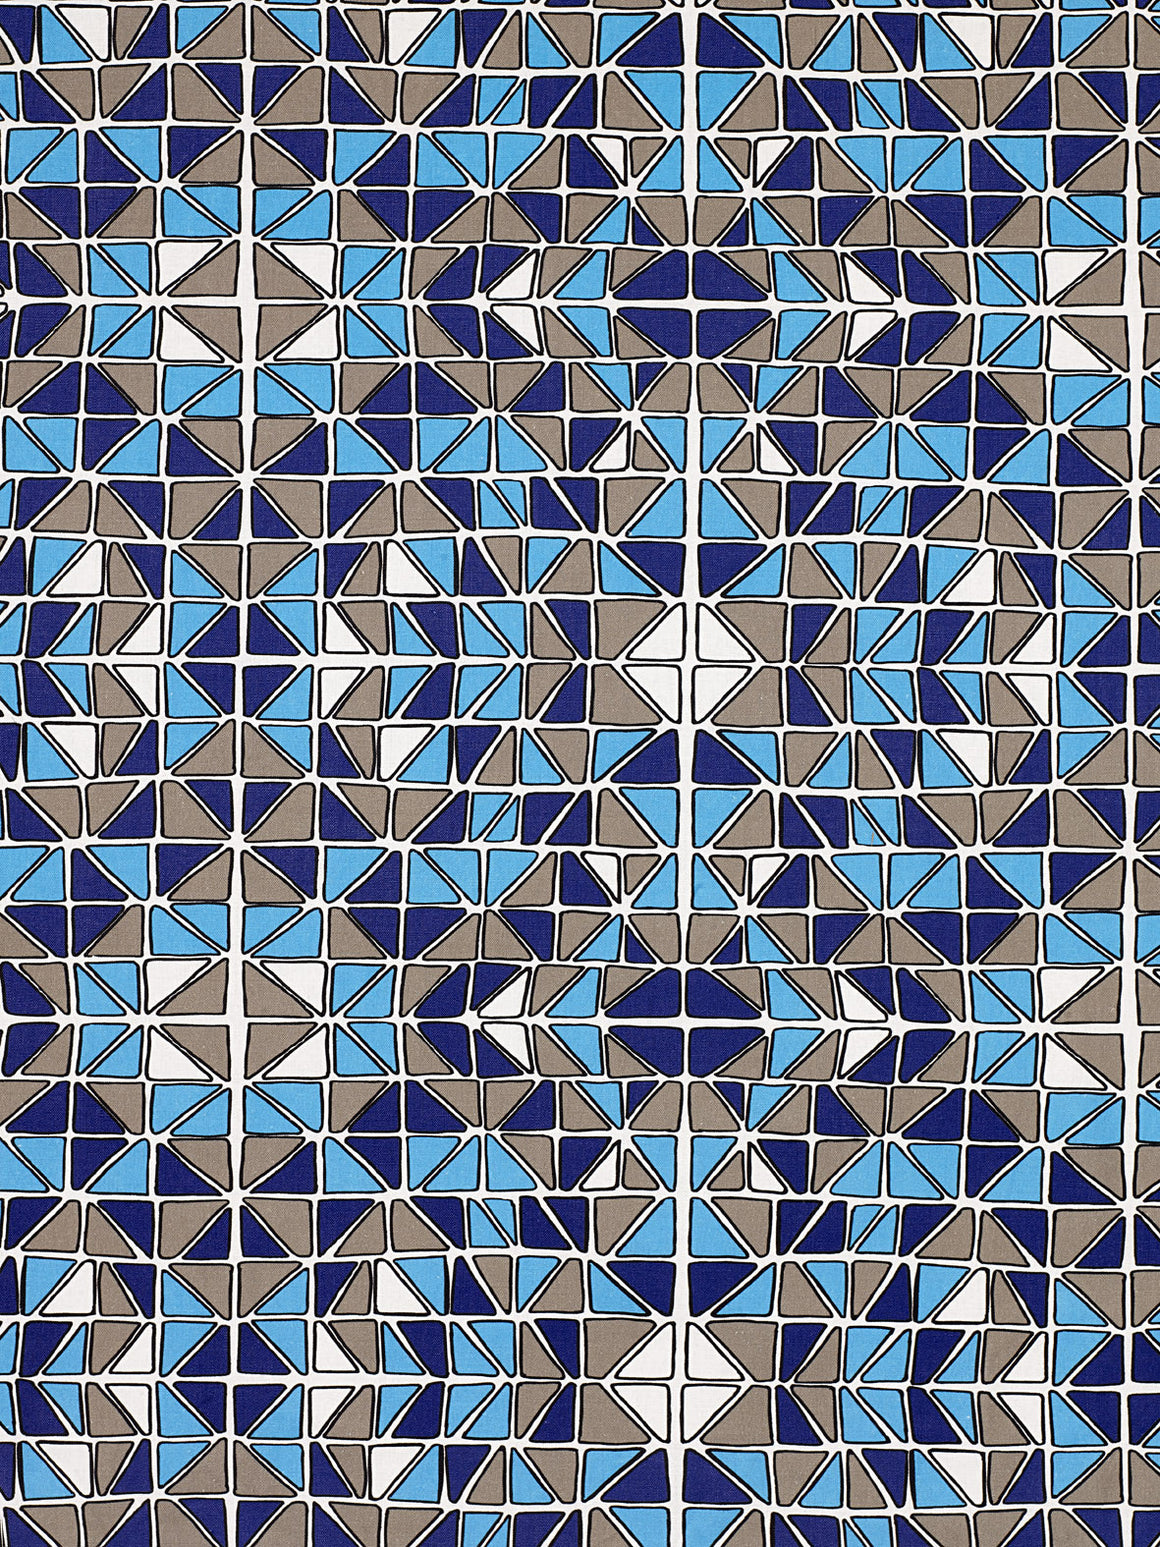 Mosaic Stained Glass Pattern Cotton Linen Fabric by the Meter in Turquoise Blue, Aubergine & Grey